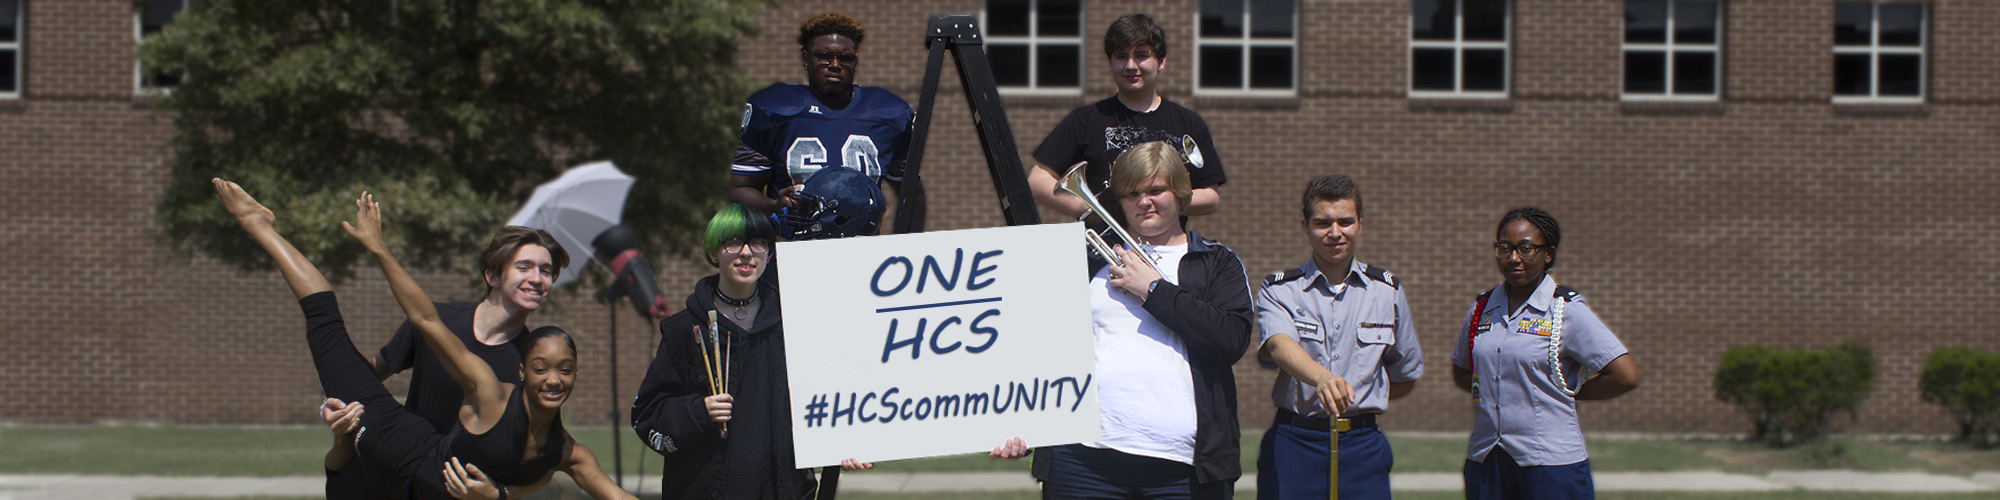 Lee and New Century dance, football, band, art, and JROTC students holding a sign which reads ONE HCS, #HCScommUNITY